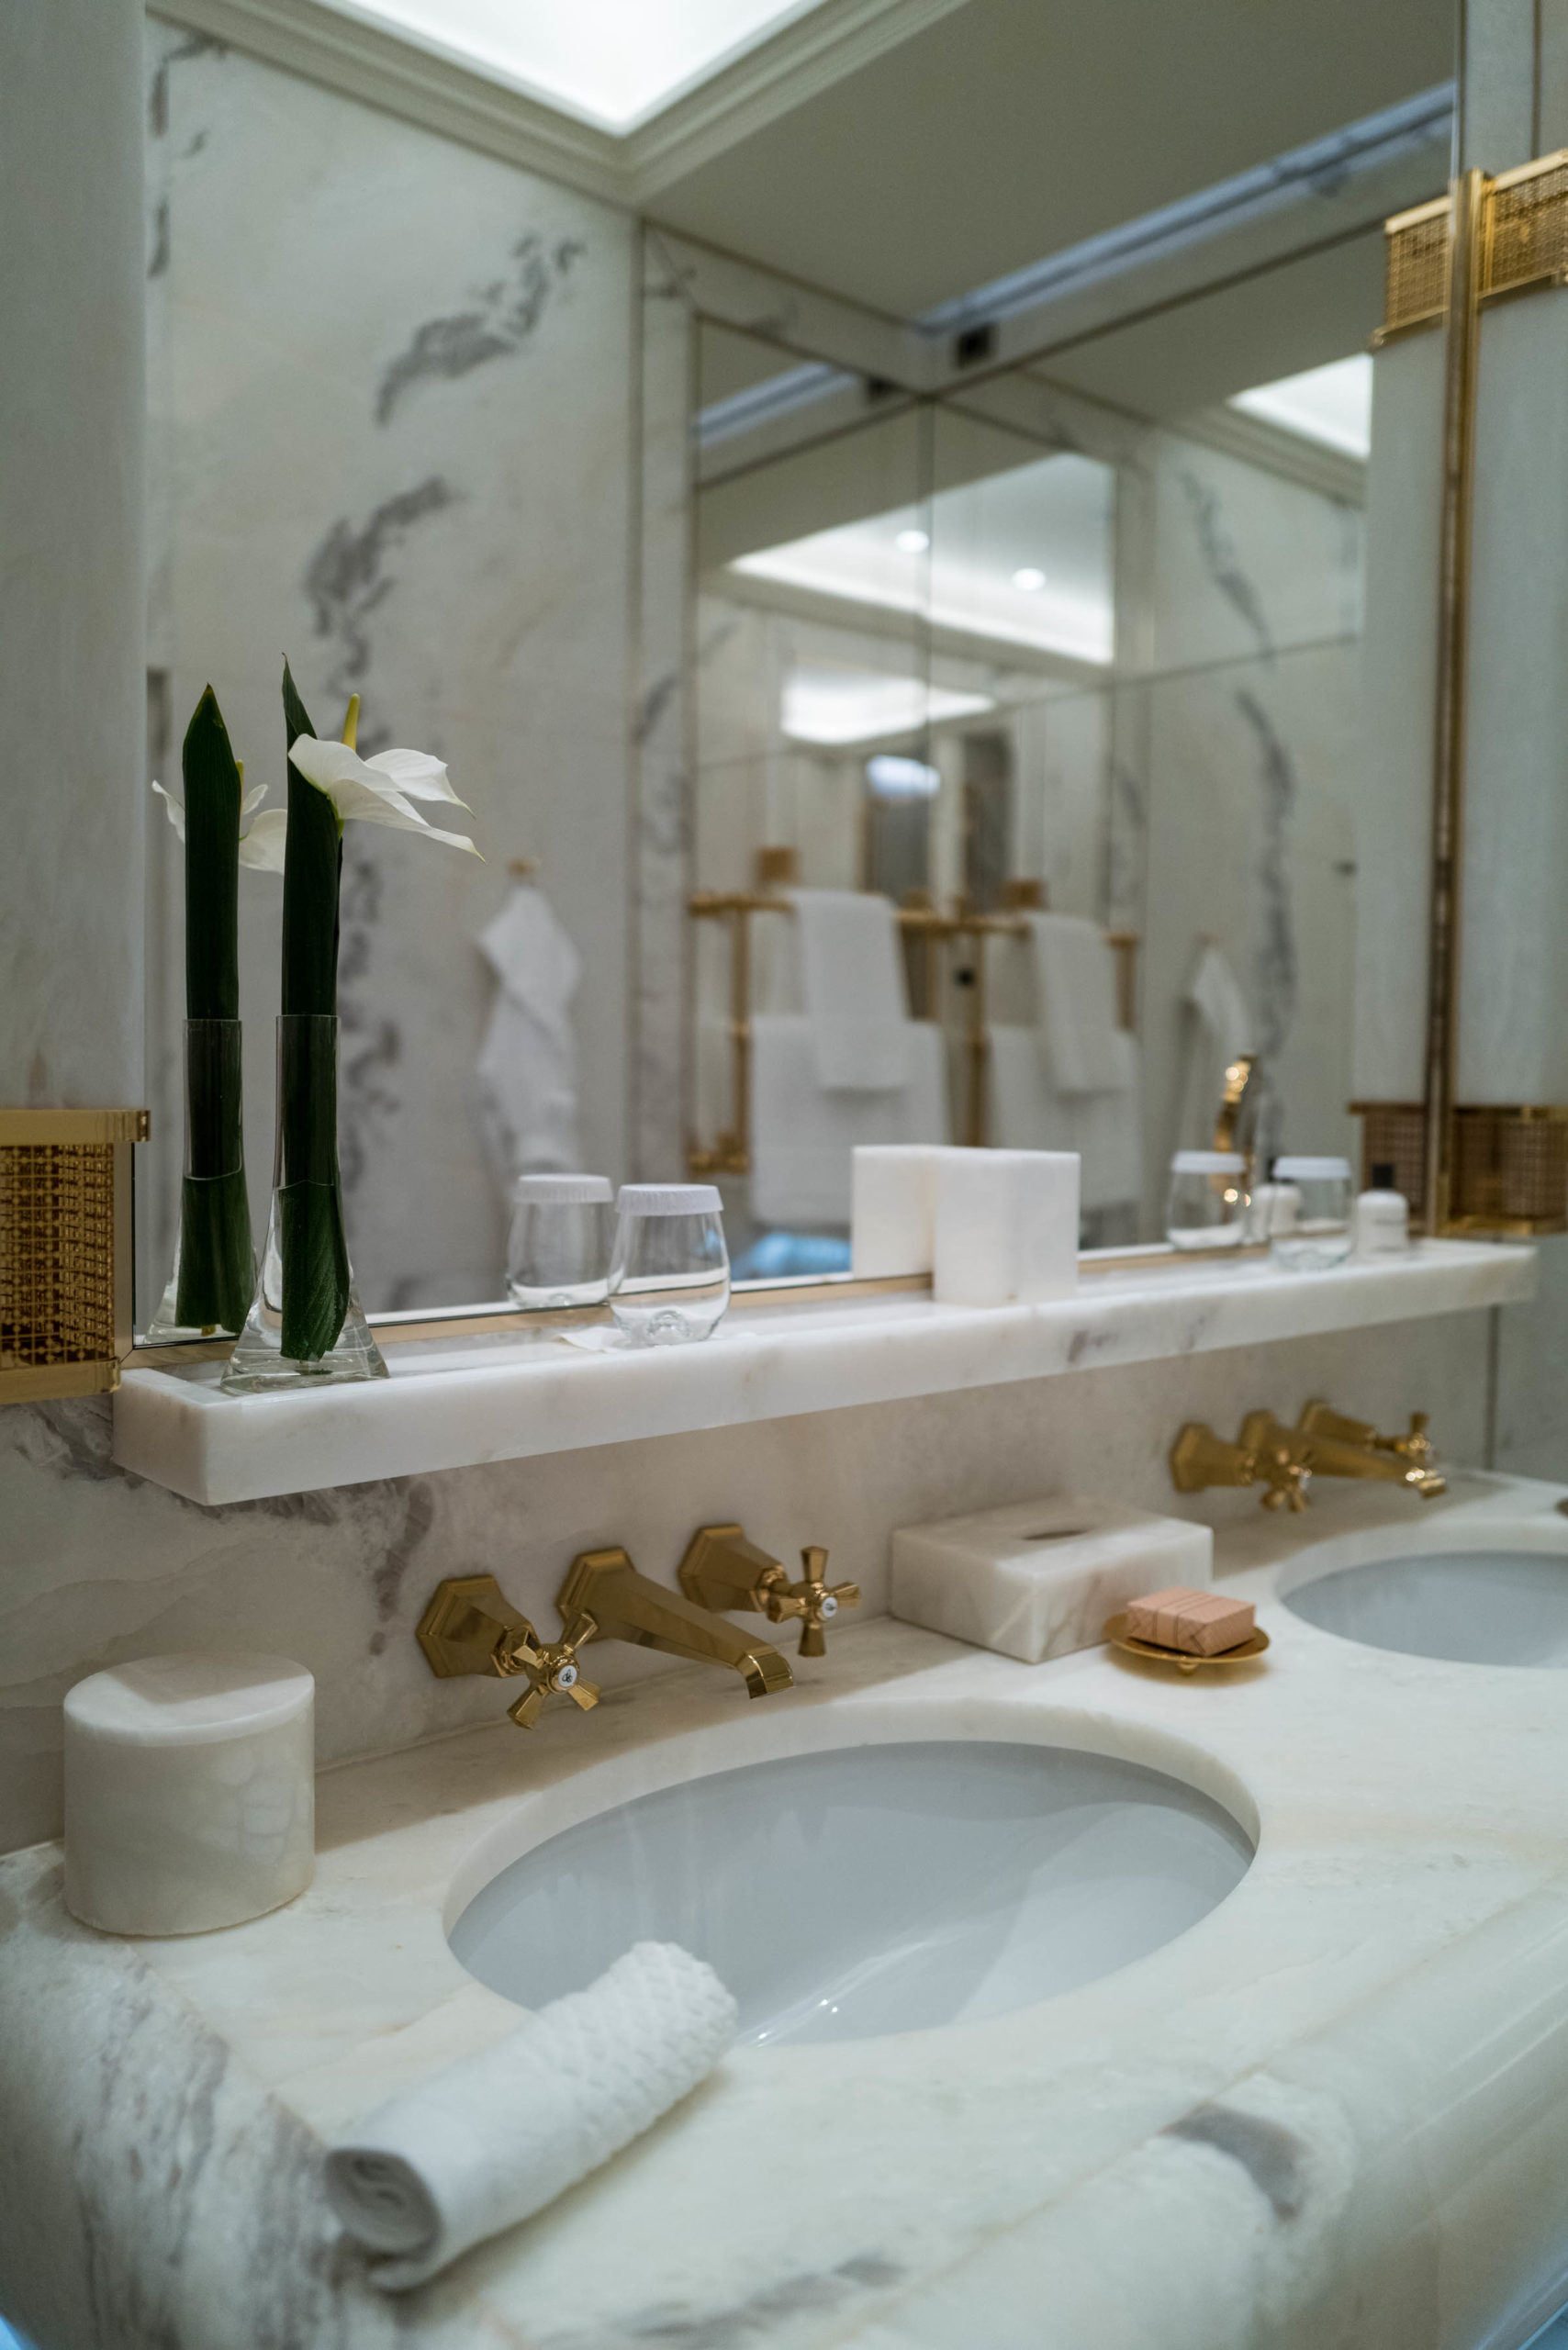 You won't want to leave this bathroom in Hotel Eden in Rome, The Taste Edit #hotel #rome #italy #bathroom